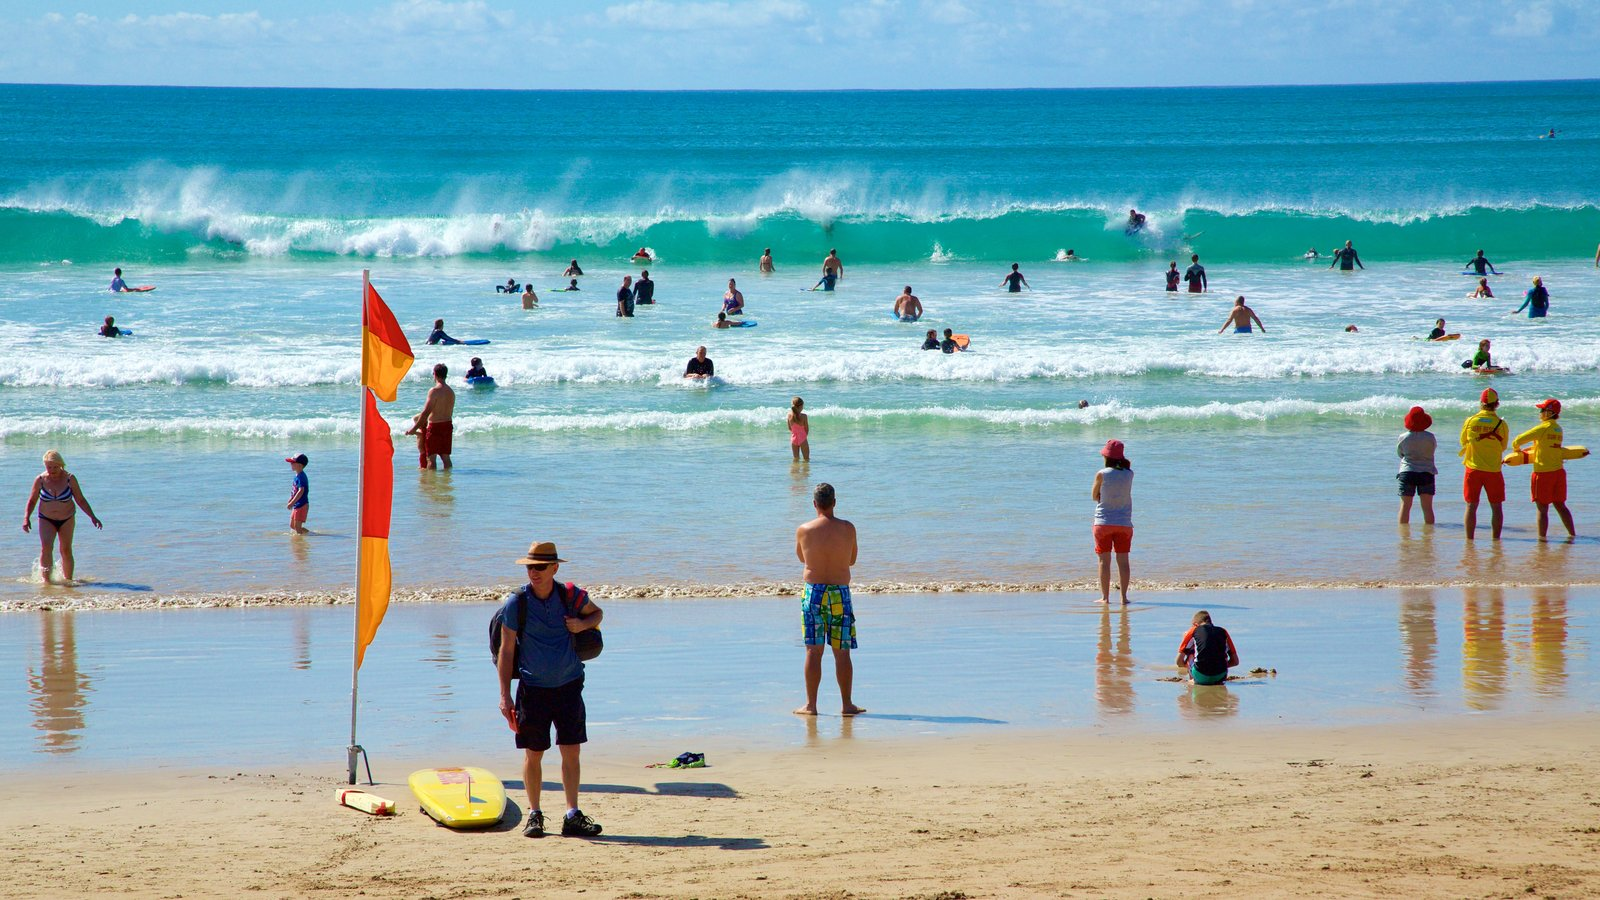 Lorne showing swimming and a sandy beach as well as a large group of people